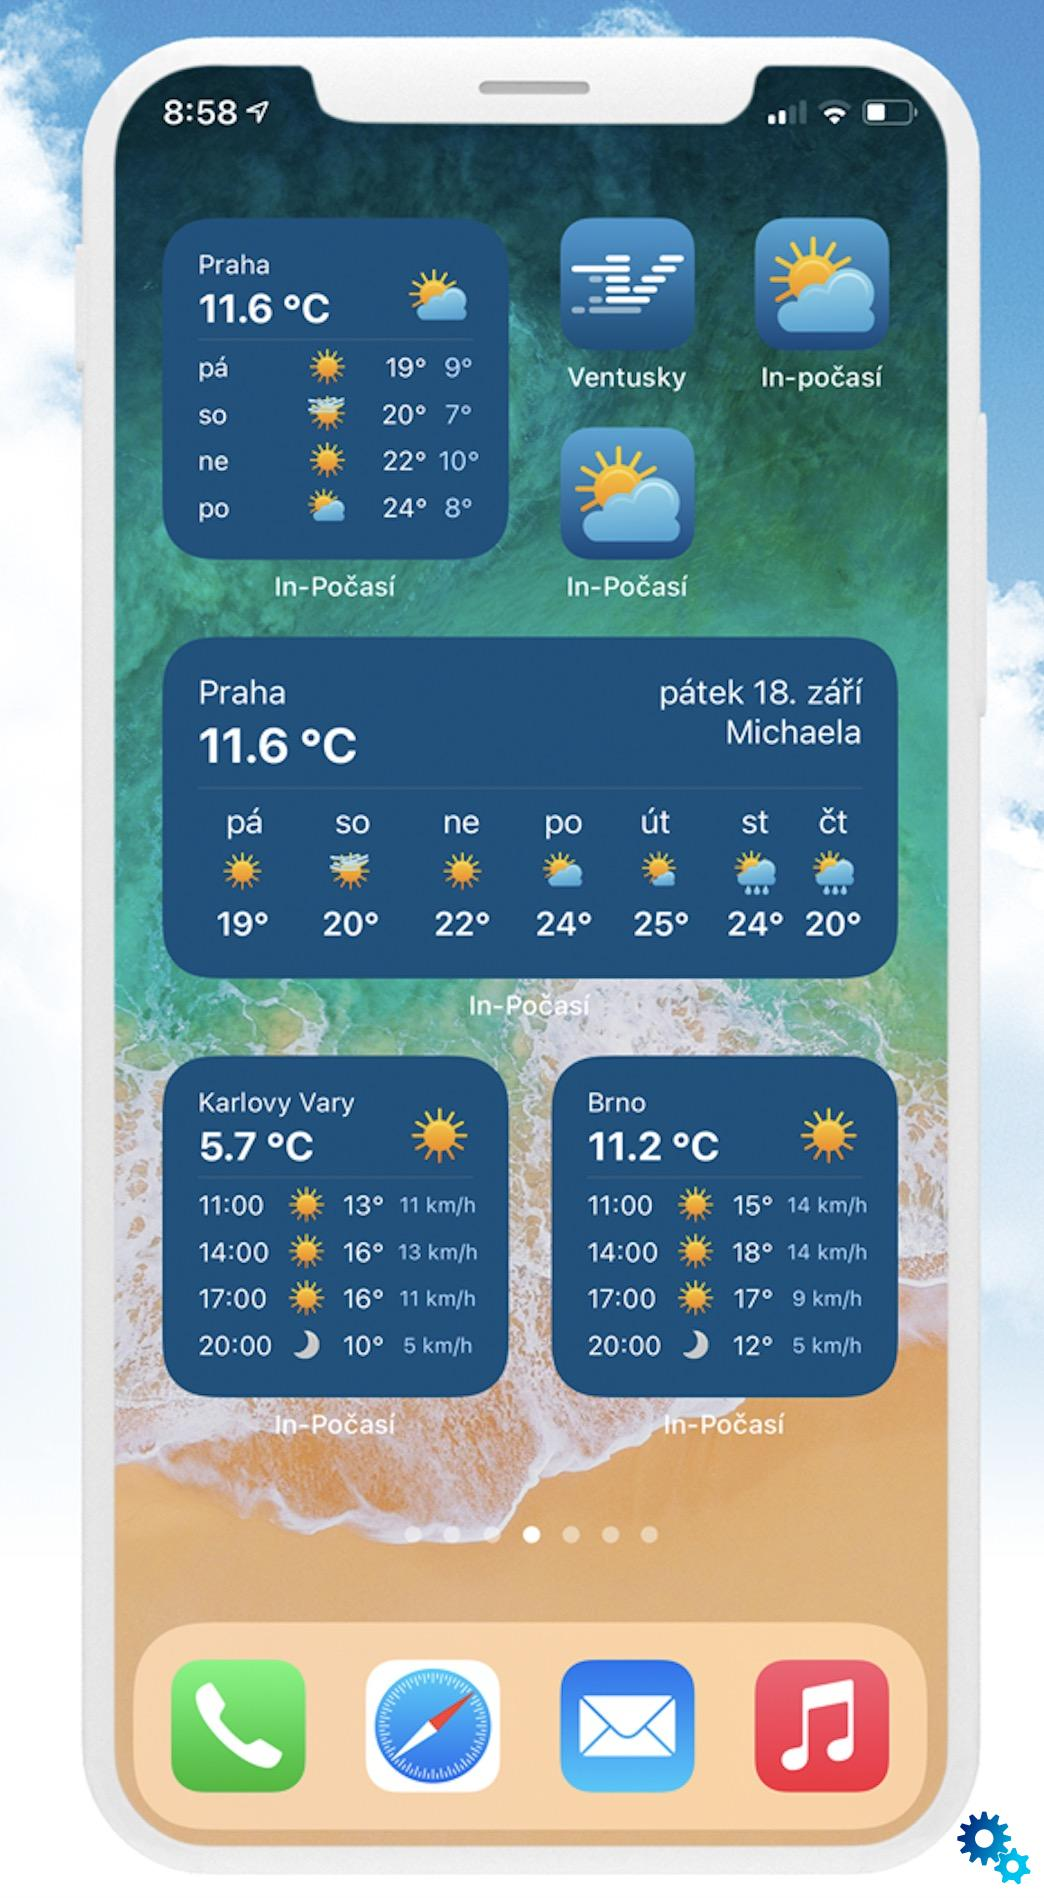 The Czech In-weather application now offers widgets with the weather or holidays, and in practicality they will also surpass widgets from Apple